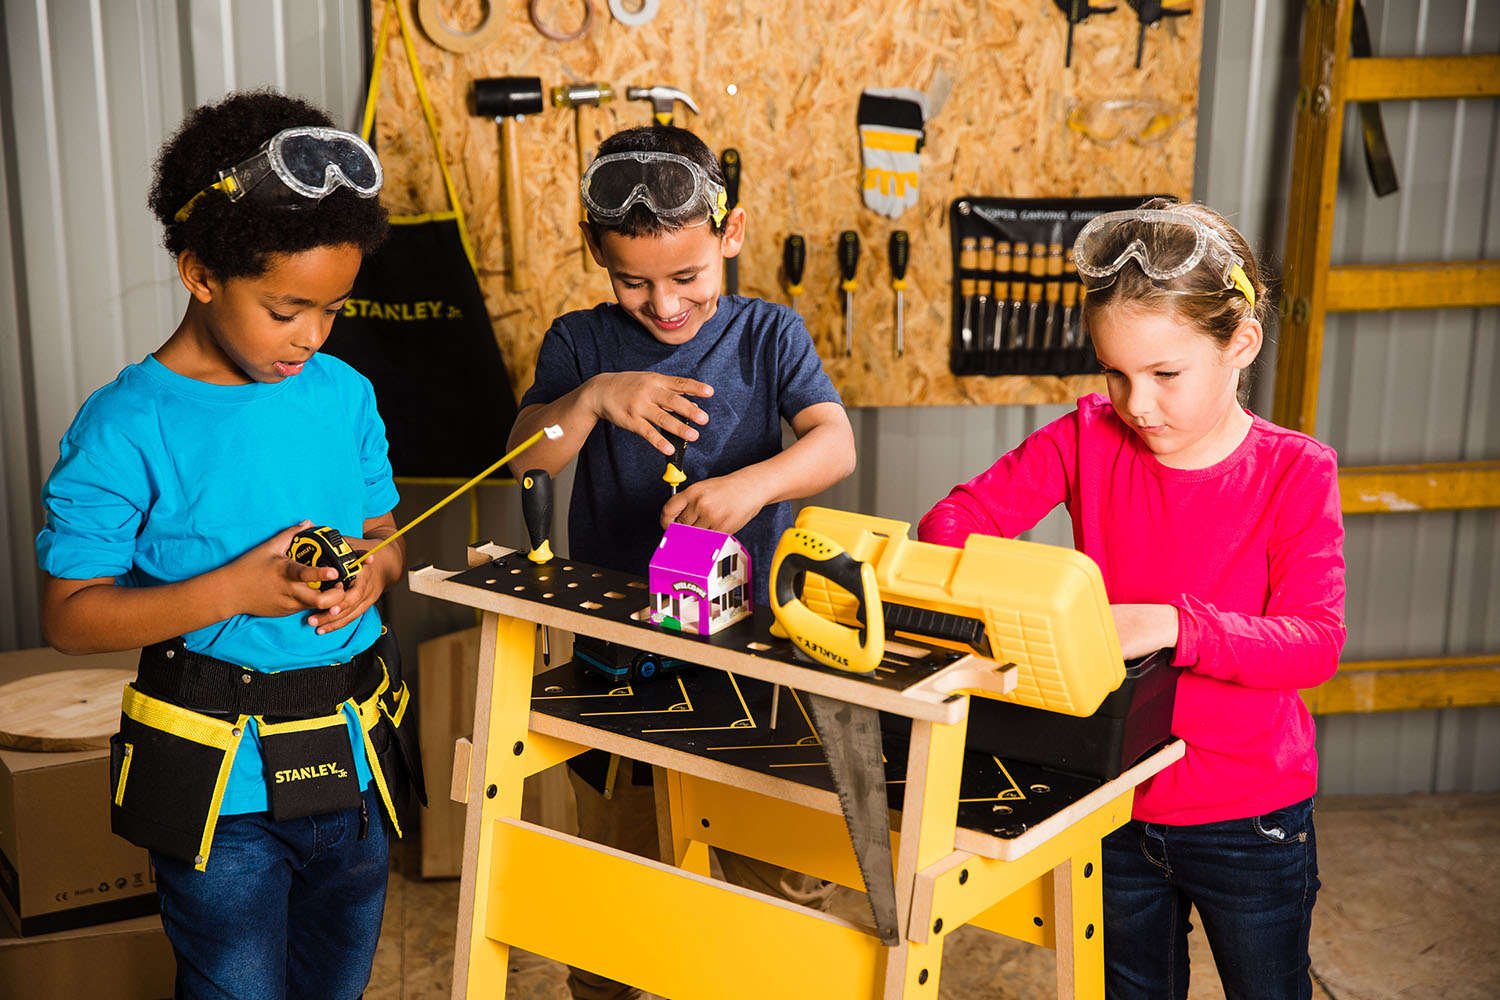 Stanley Jr. - Kids' Workbench with 5 tools